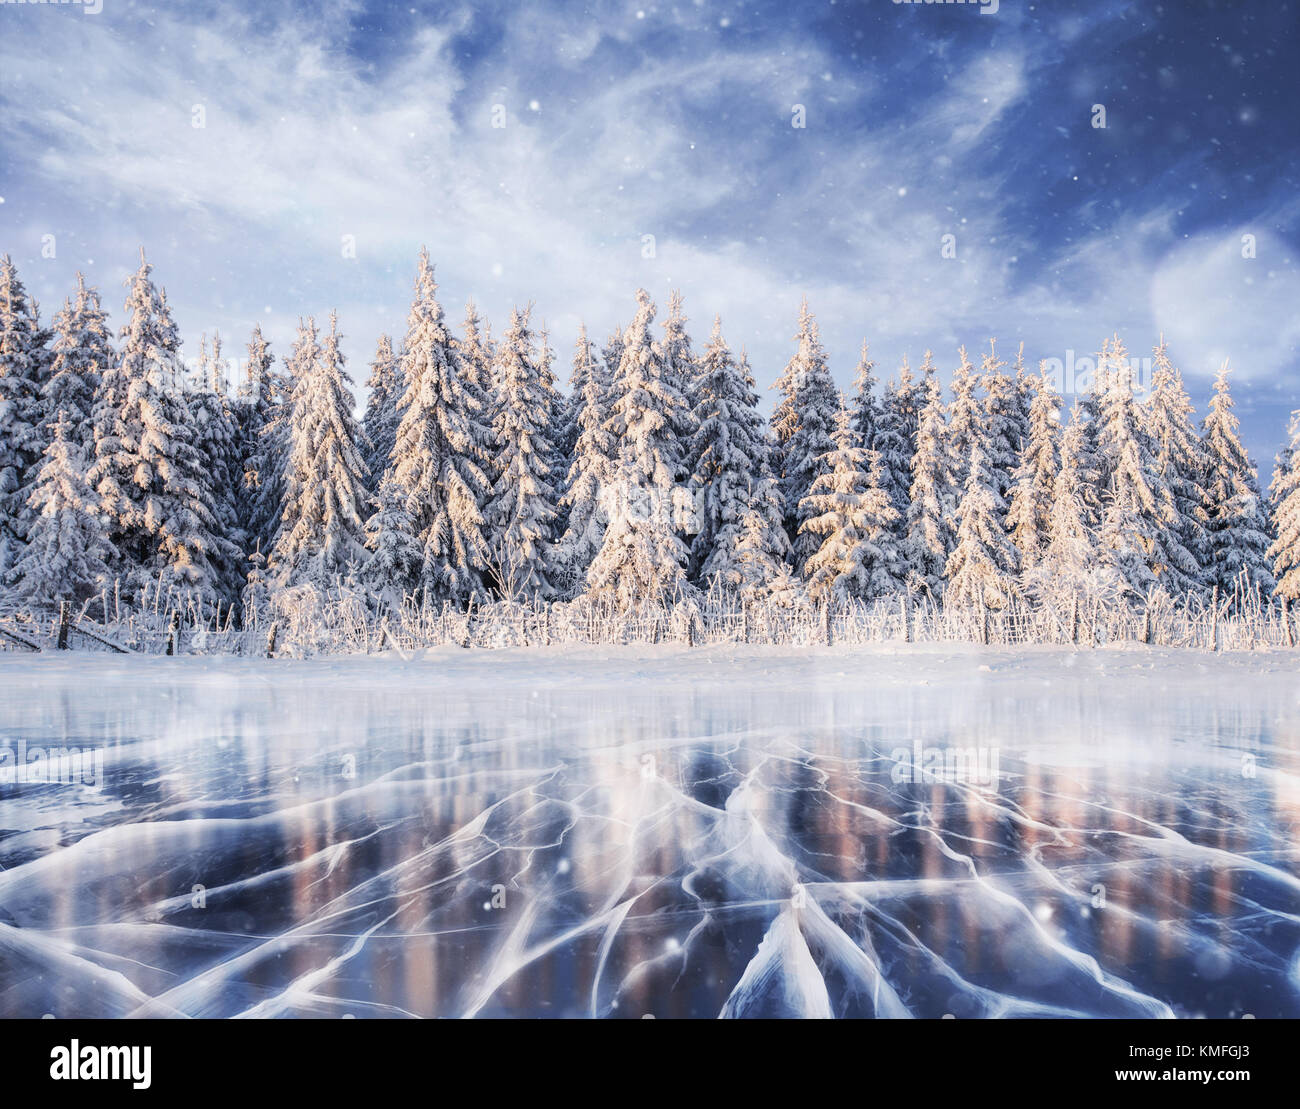 magical winter snow covered tree. Winter landscape. - Stock Image